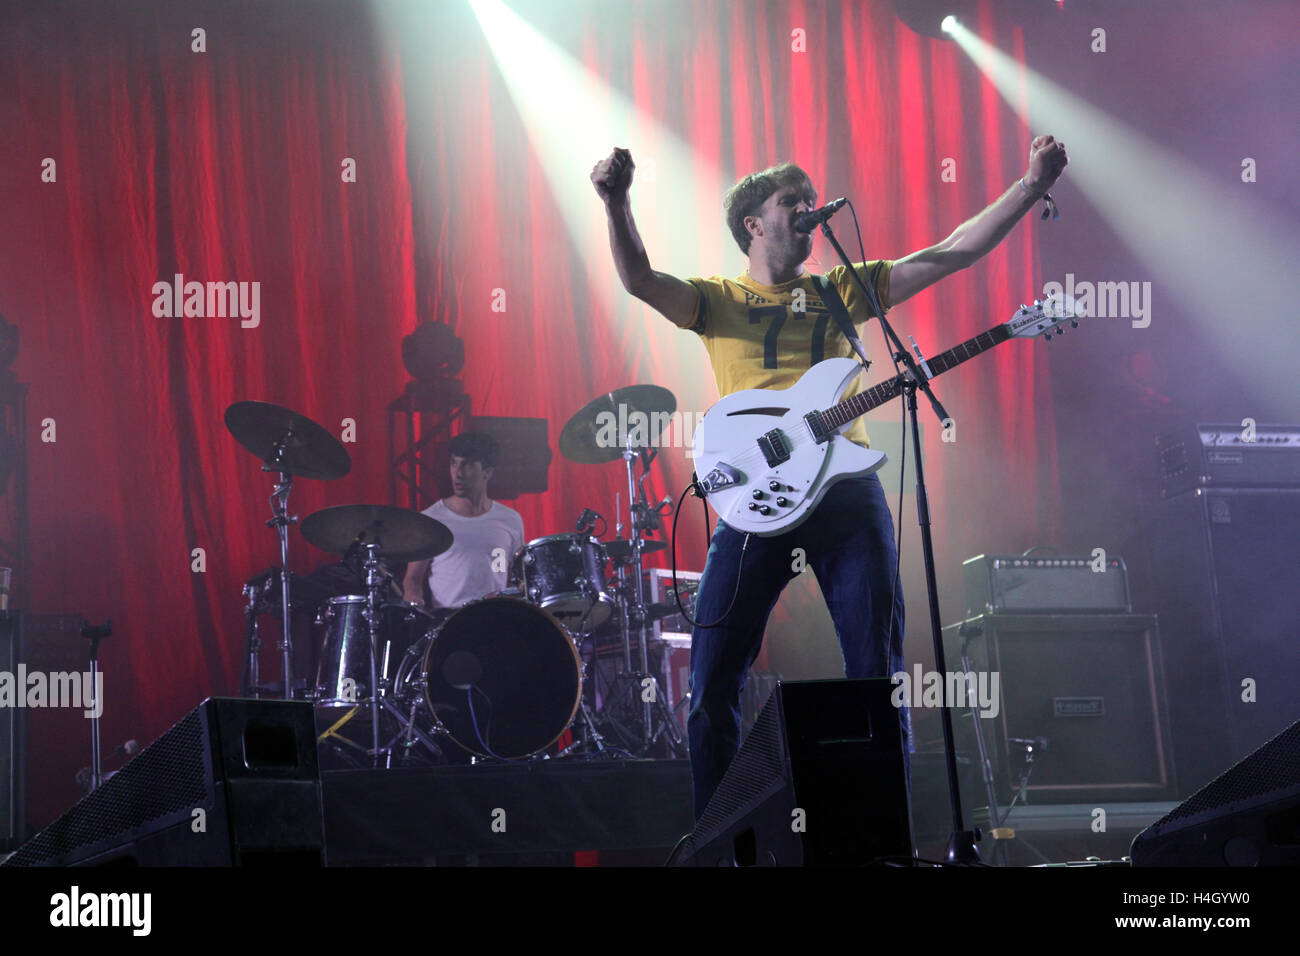 English indie rock band The Vaccines performs at the Colours of Ostrava music festival, Czech Republic, 17 July - Stock Image